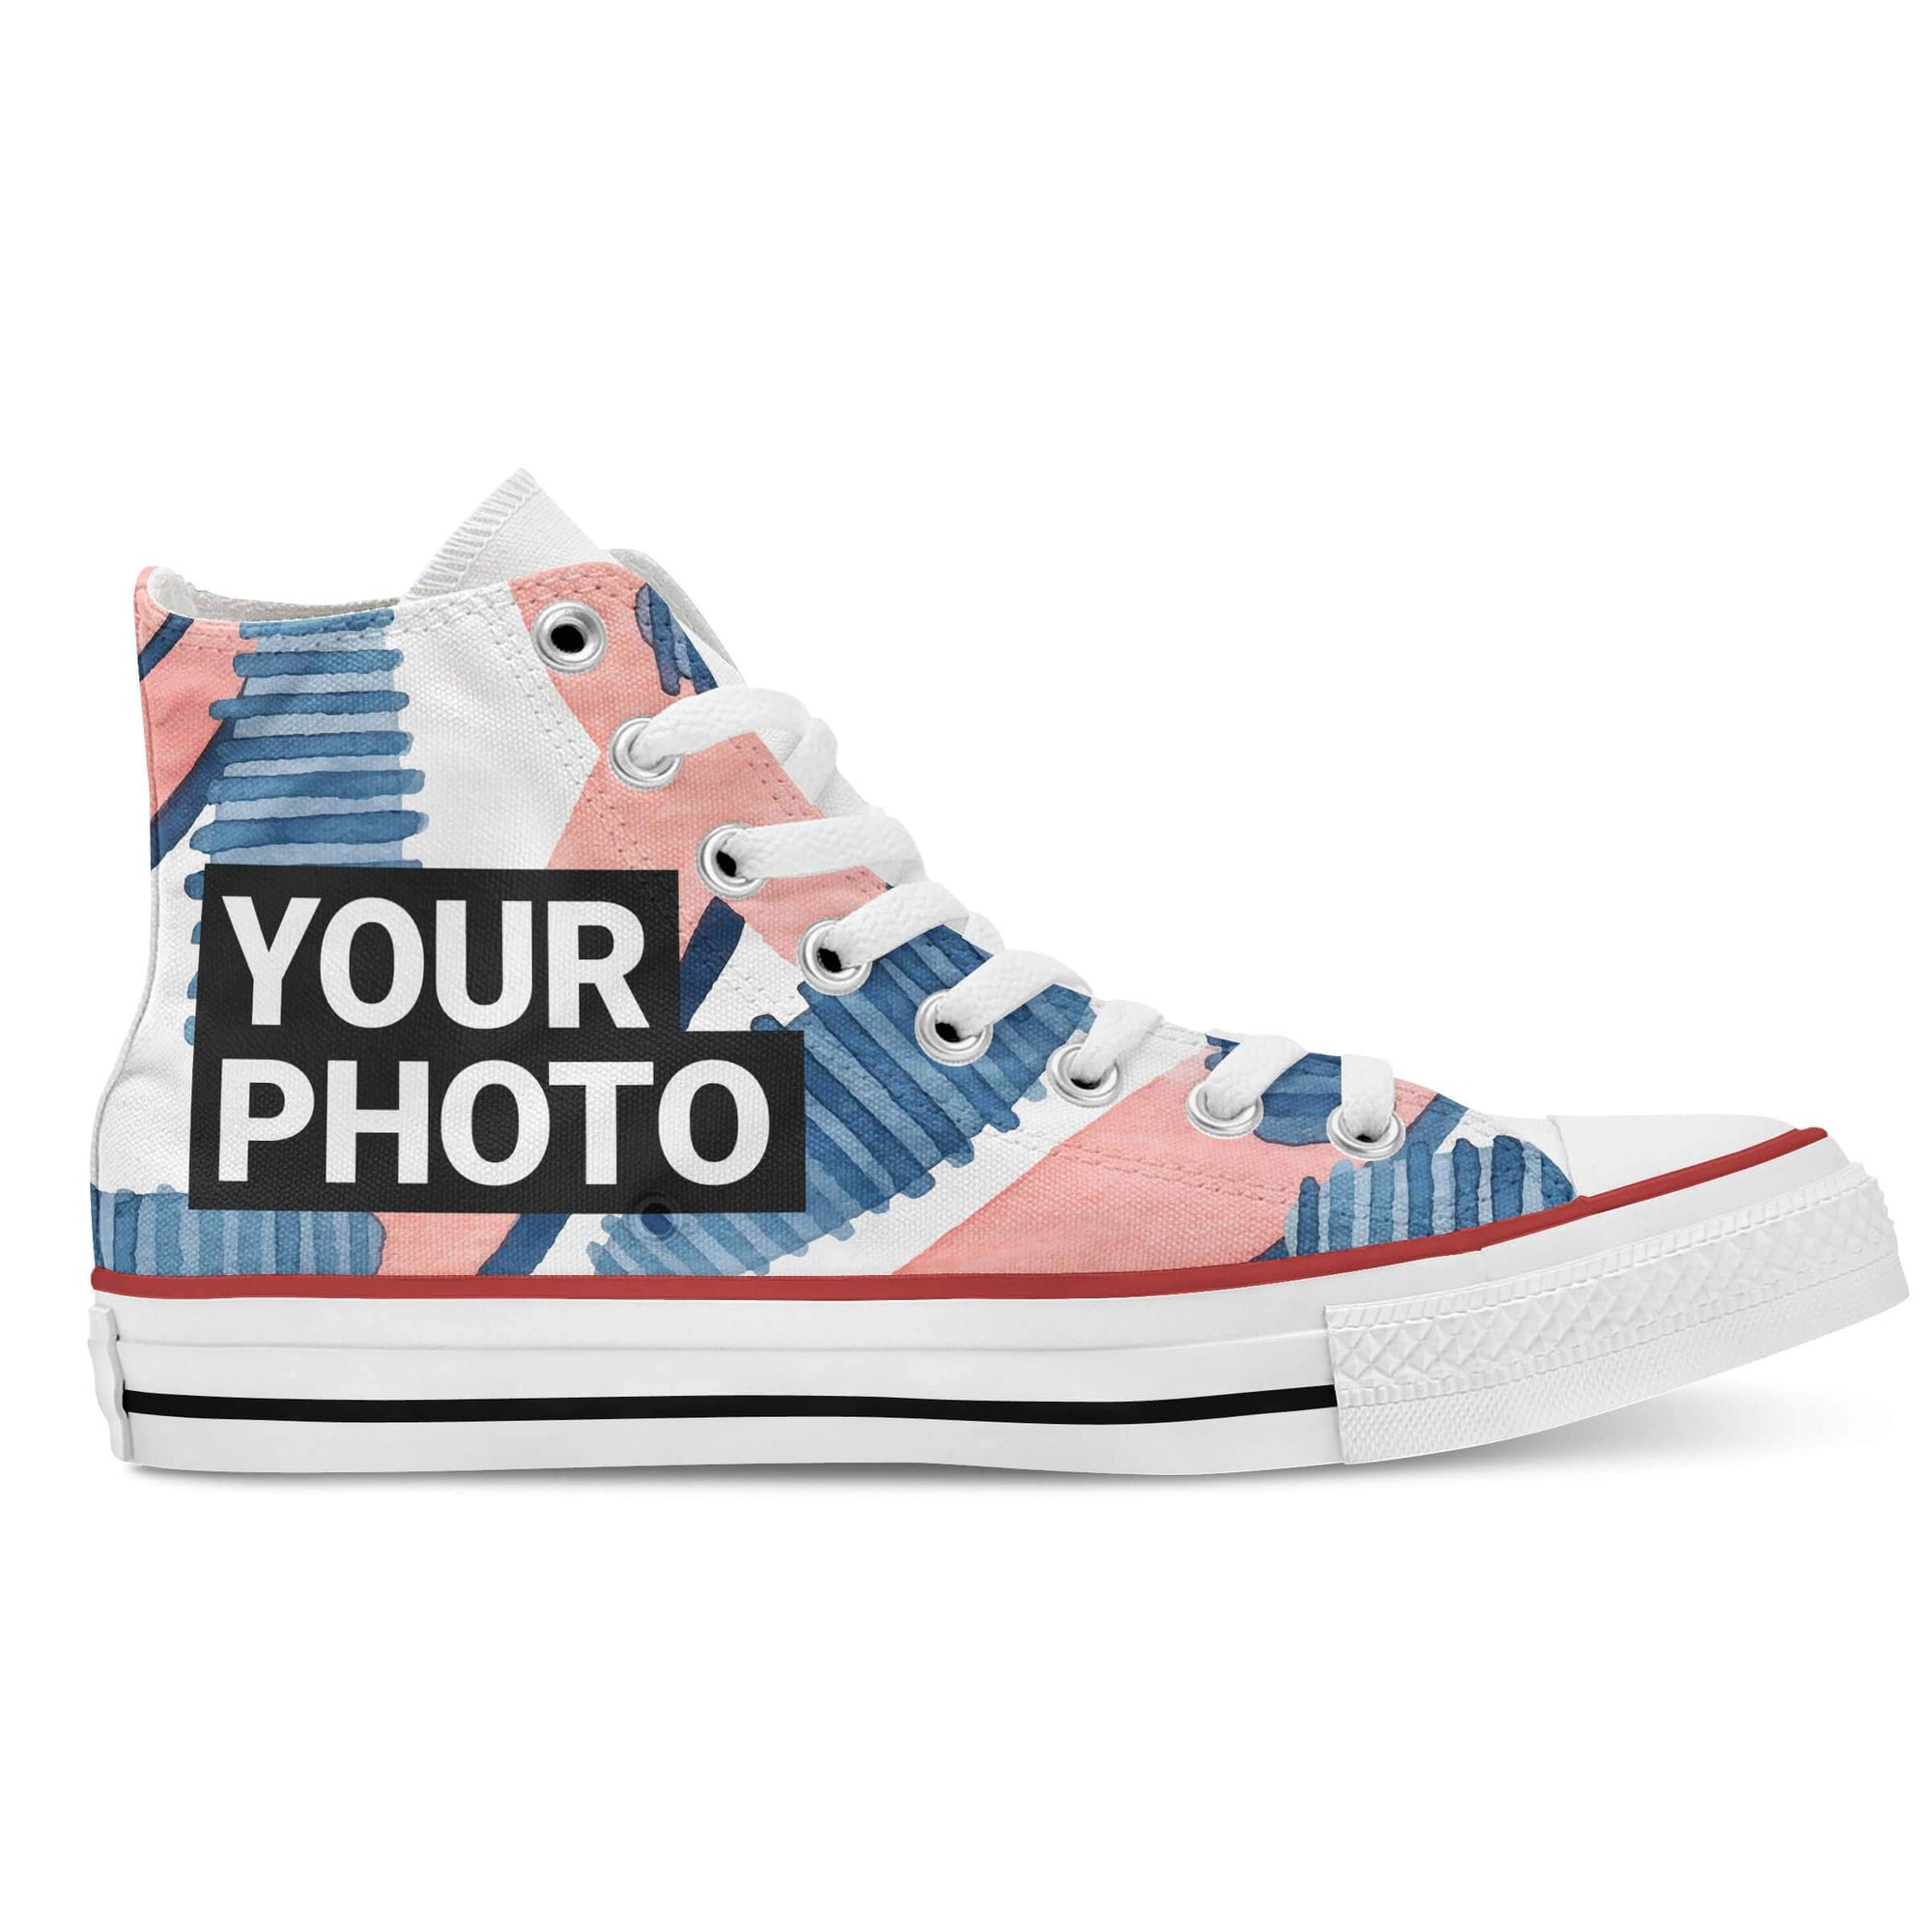 Personalised Converse Chuck Taylor All Star High Top